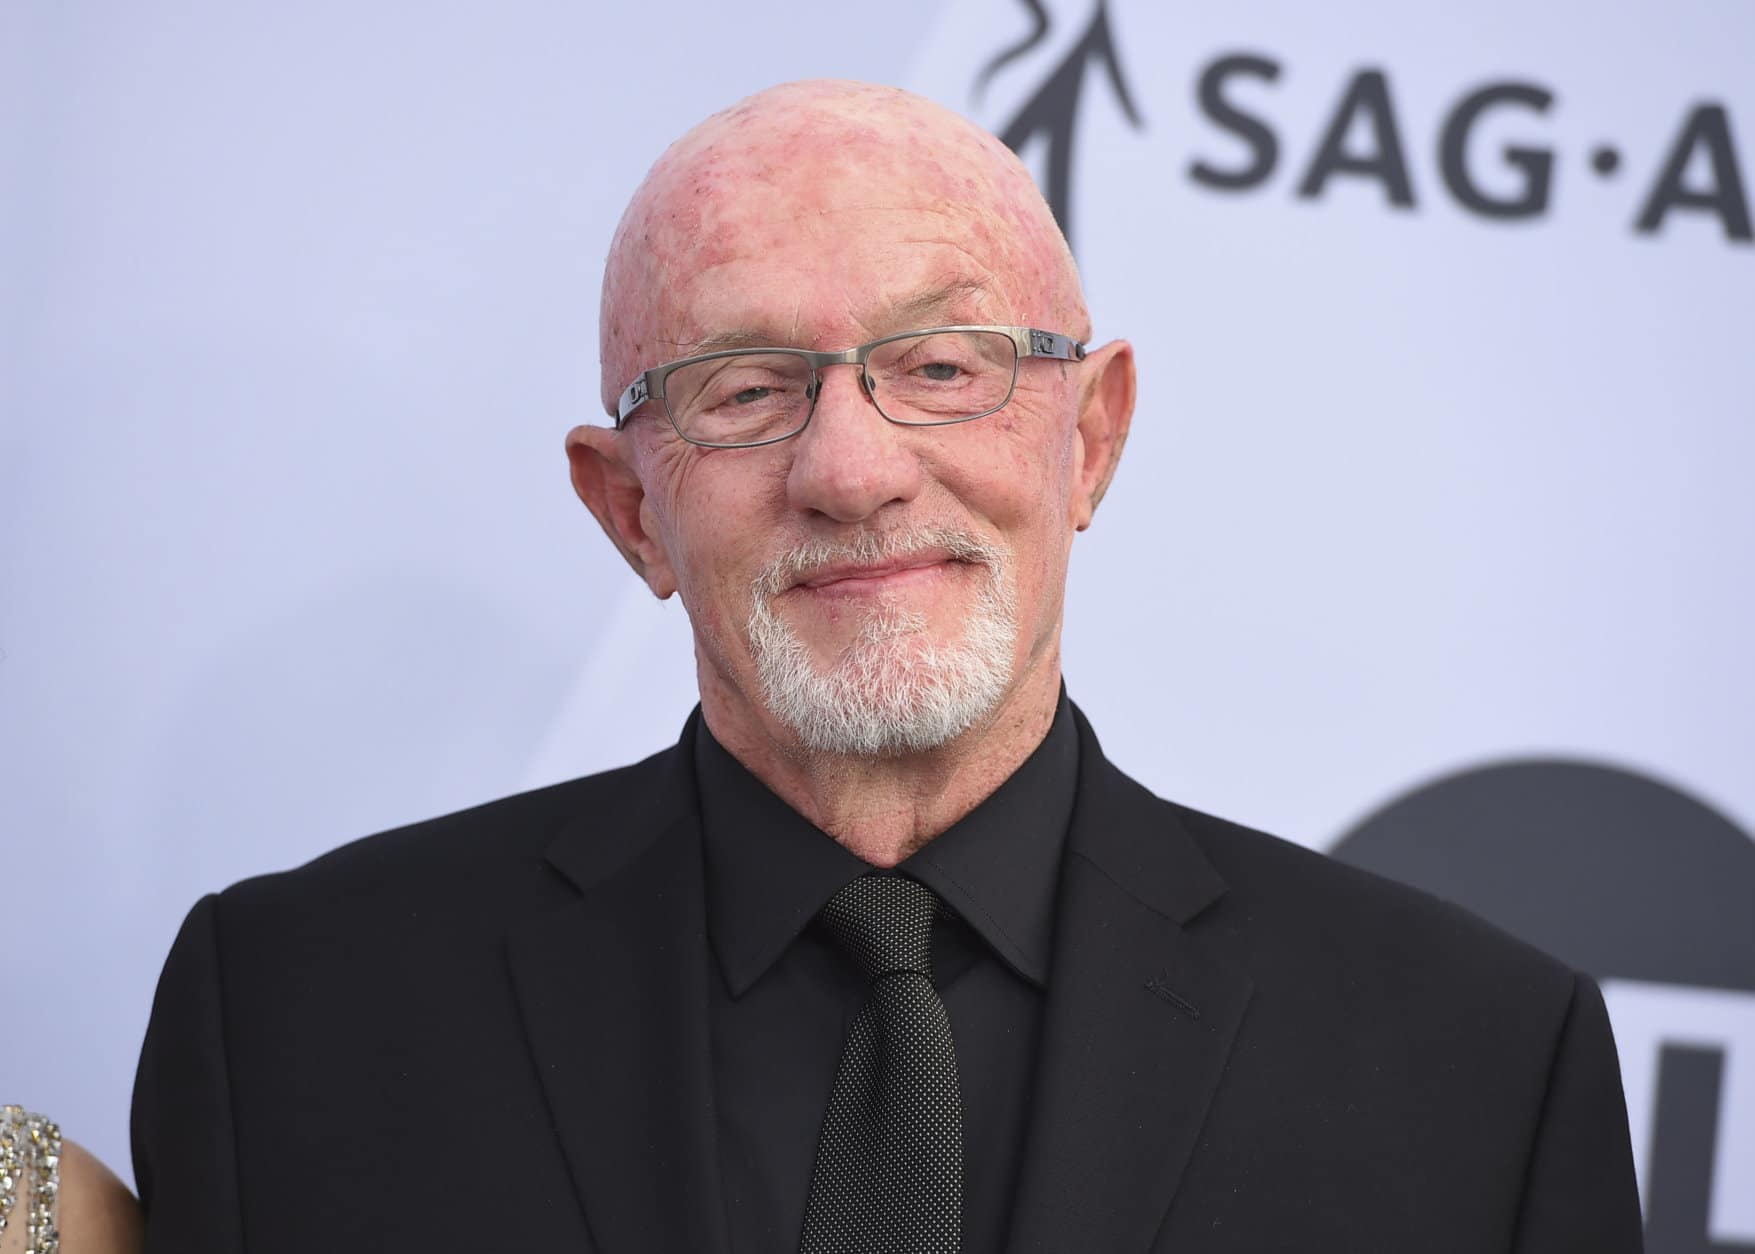 Jonathan Banks arrives at the 25th annual Screen Actors Guild Awards at the Shrine Auditorium & Expo Hall on Sunday, Jan. 27, 2019, in Los Angeles. (Photo by Jordan Strauss/Invision/AP)